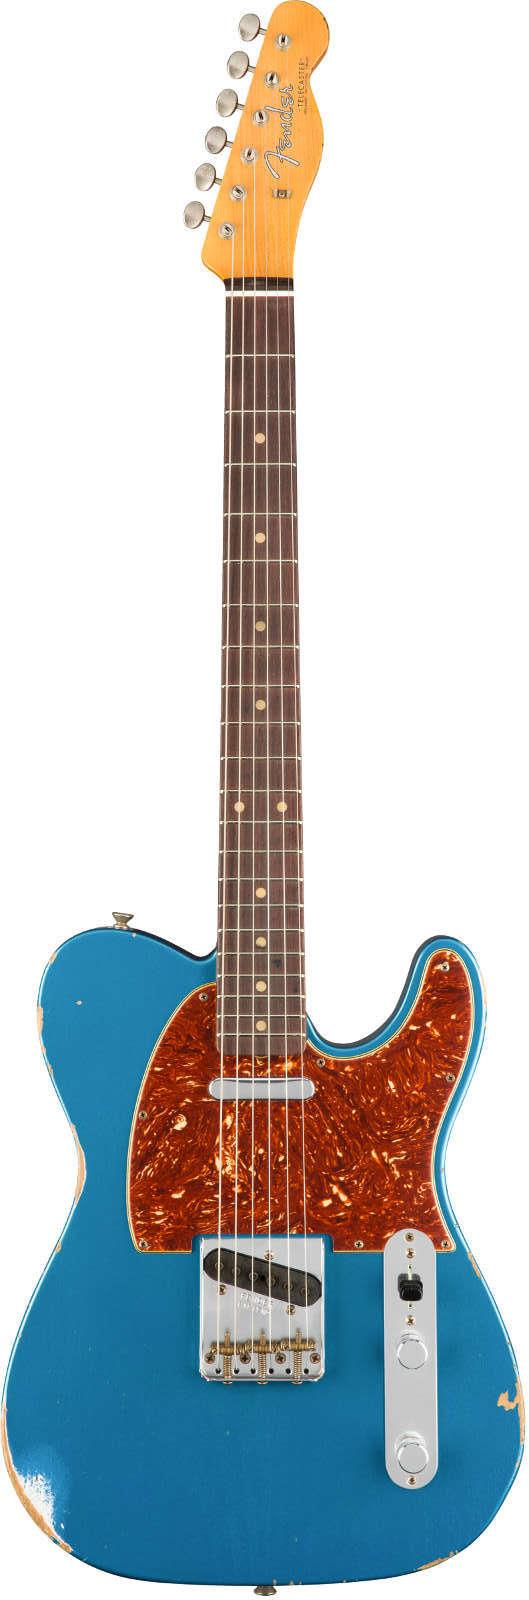 fender custom shop 1961 relic telecaster rw aged lake placid blue keymusic. Black Bedroom Furniture Sets. Home Design Ideas